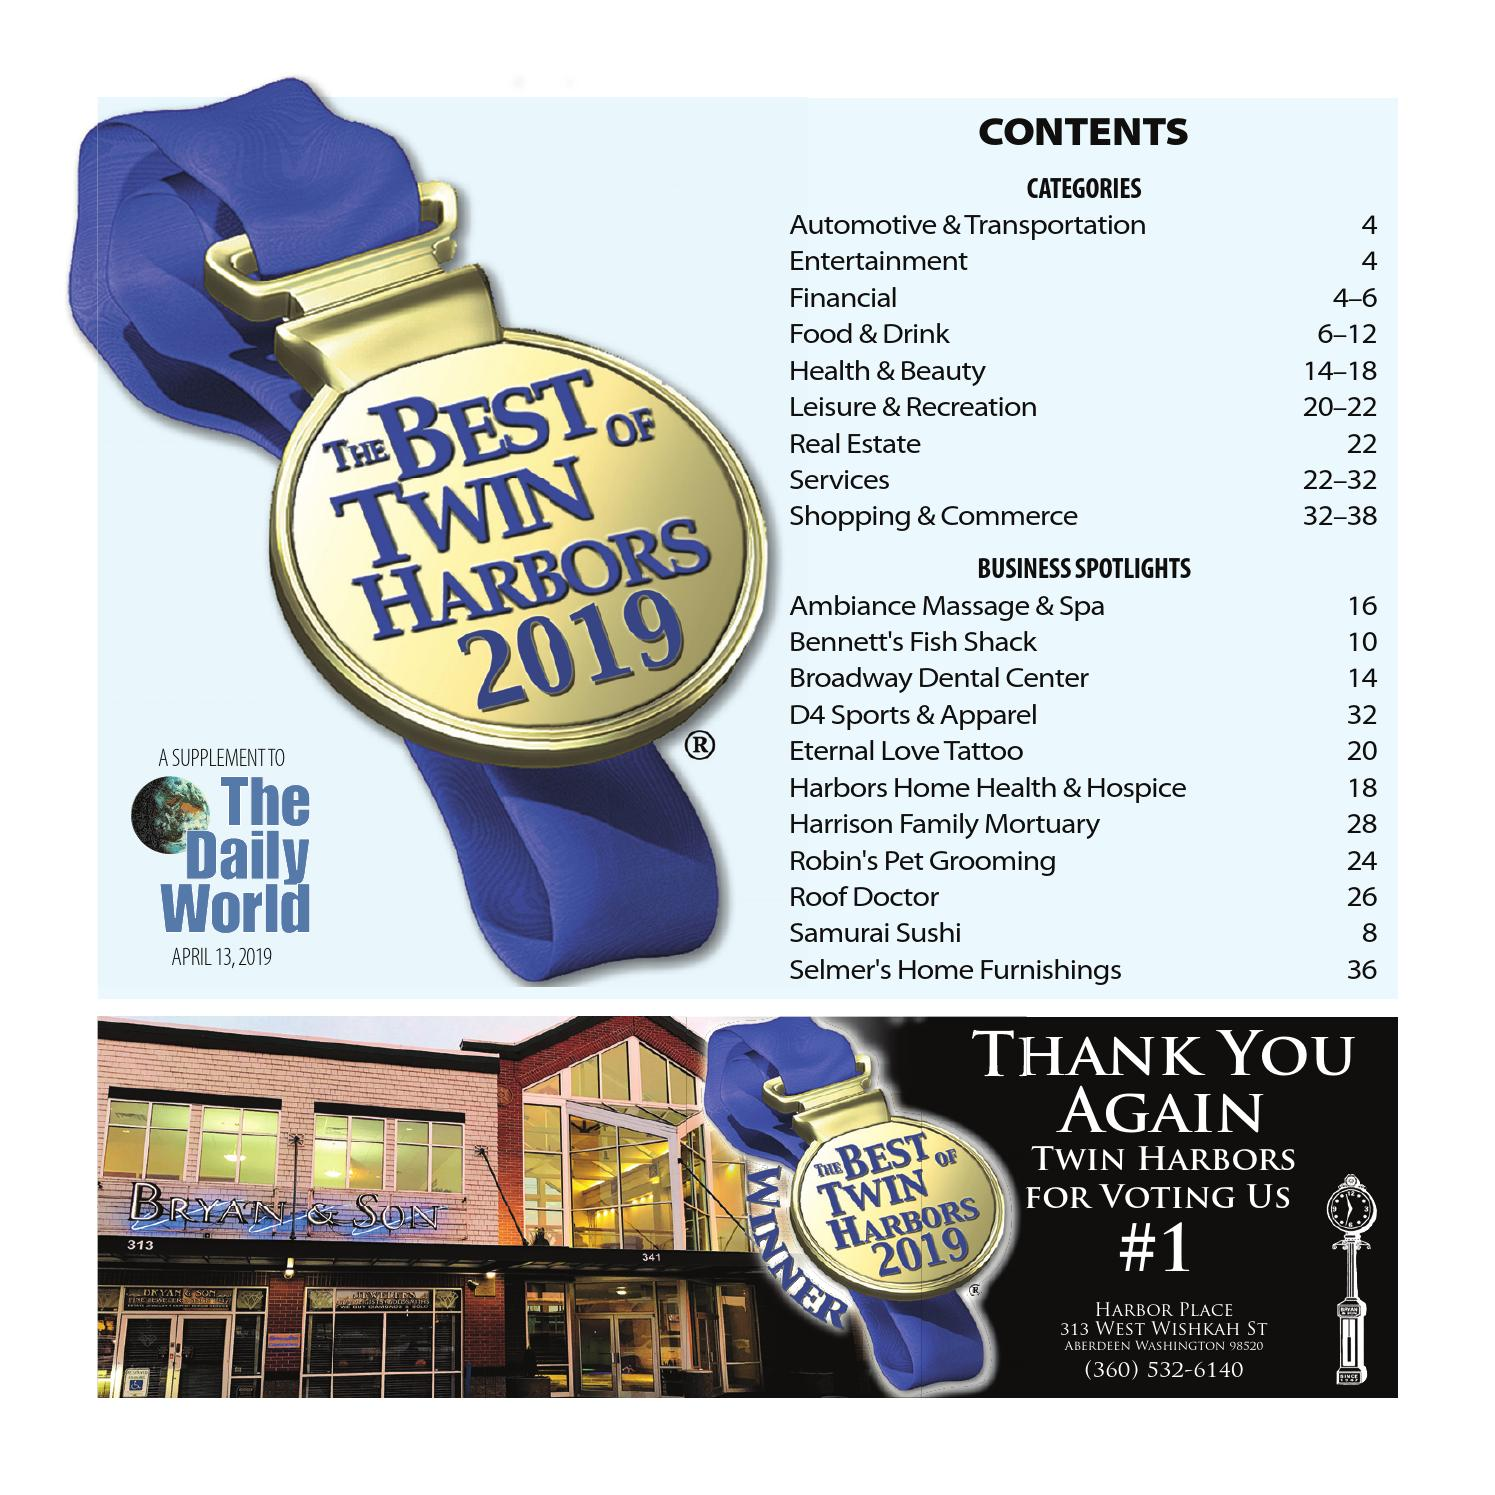 ADW - Best of Twin Harbors - Best of Twin Harbors 2019 by